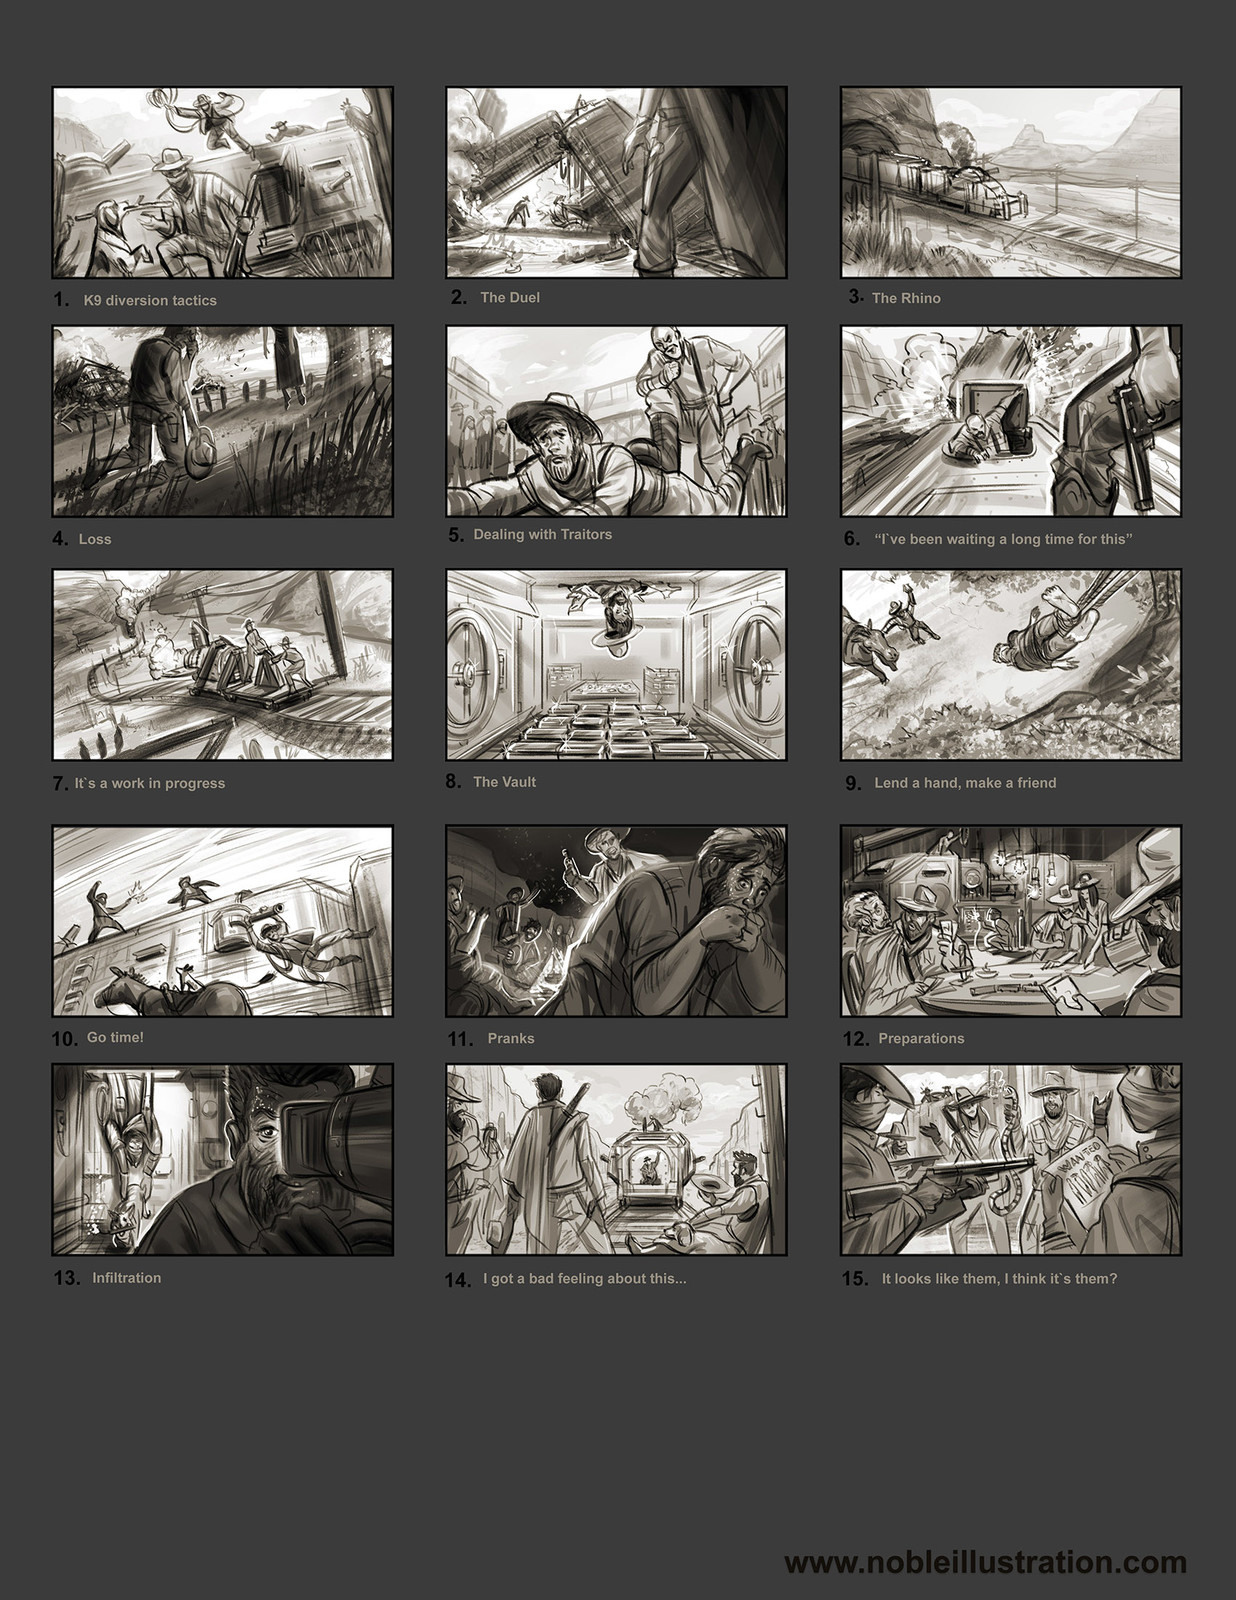 Thumbnail Studies: I started by writing down a quick plot summary Then I started sketching out different beats in the story using thumbnail sketches. Im not much of a writer so for me pictures do a far better job.